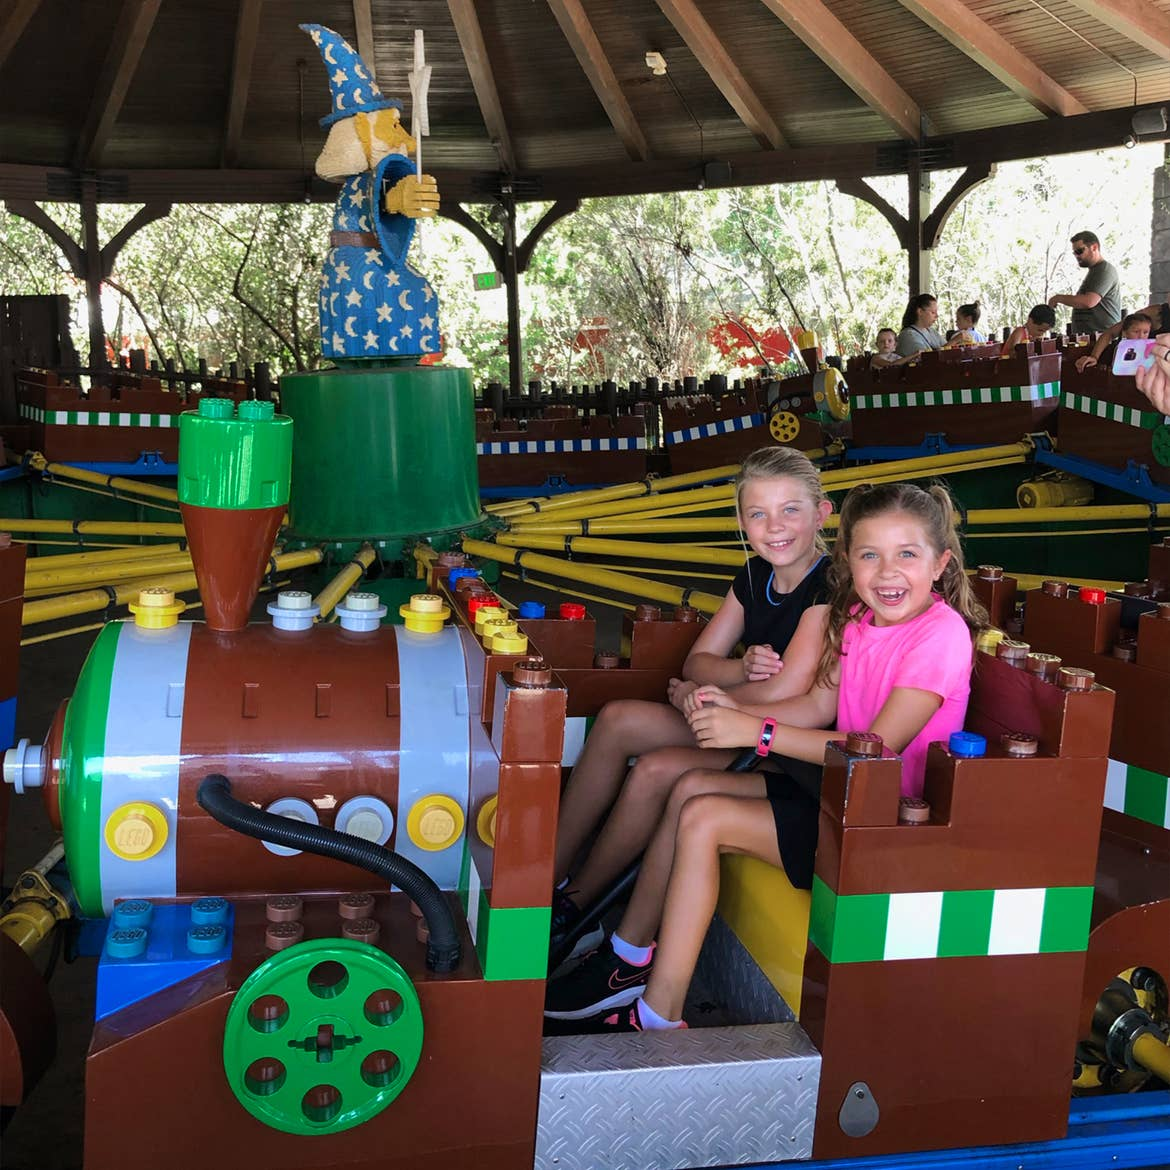 Two young girls sit on a ride vehicle made of LEGOS.